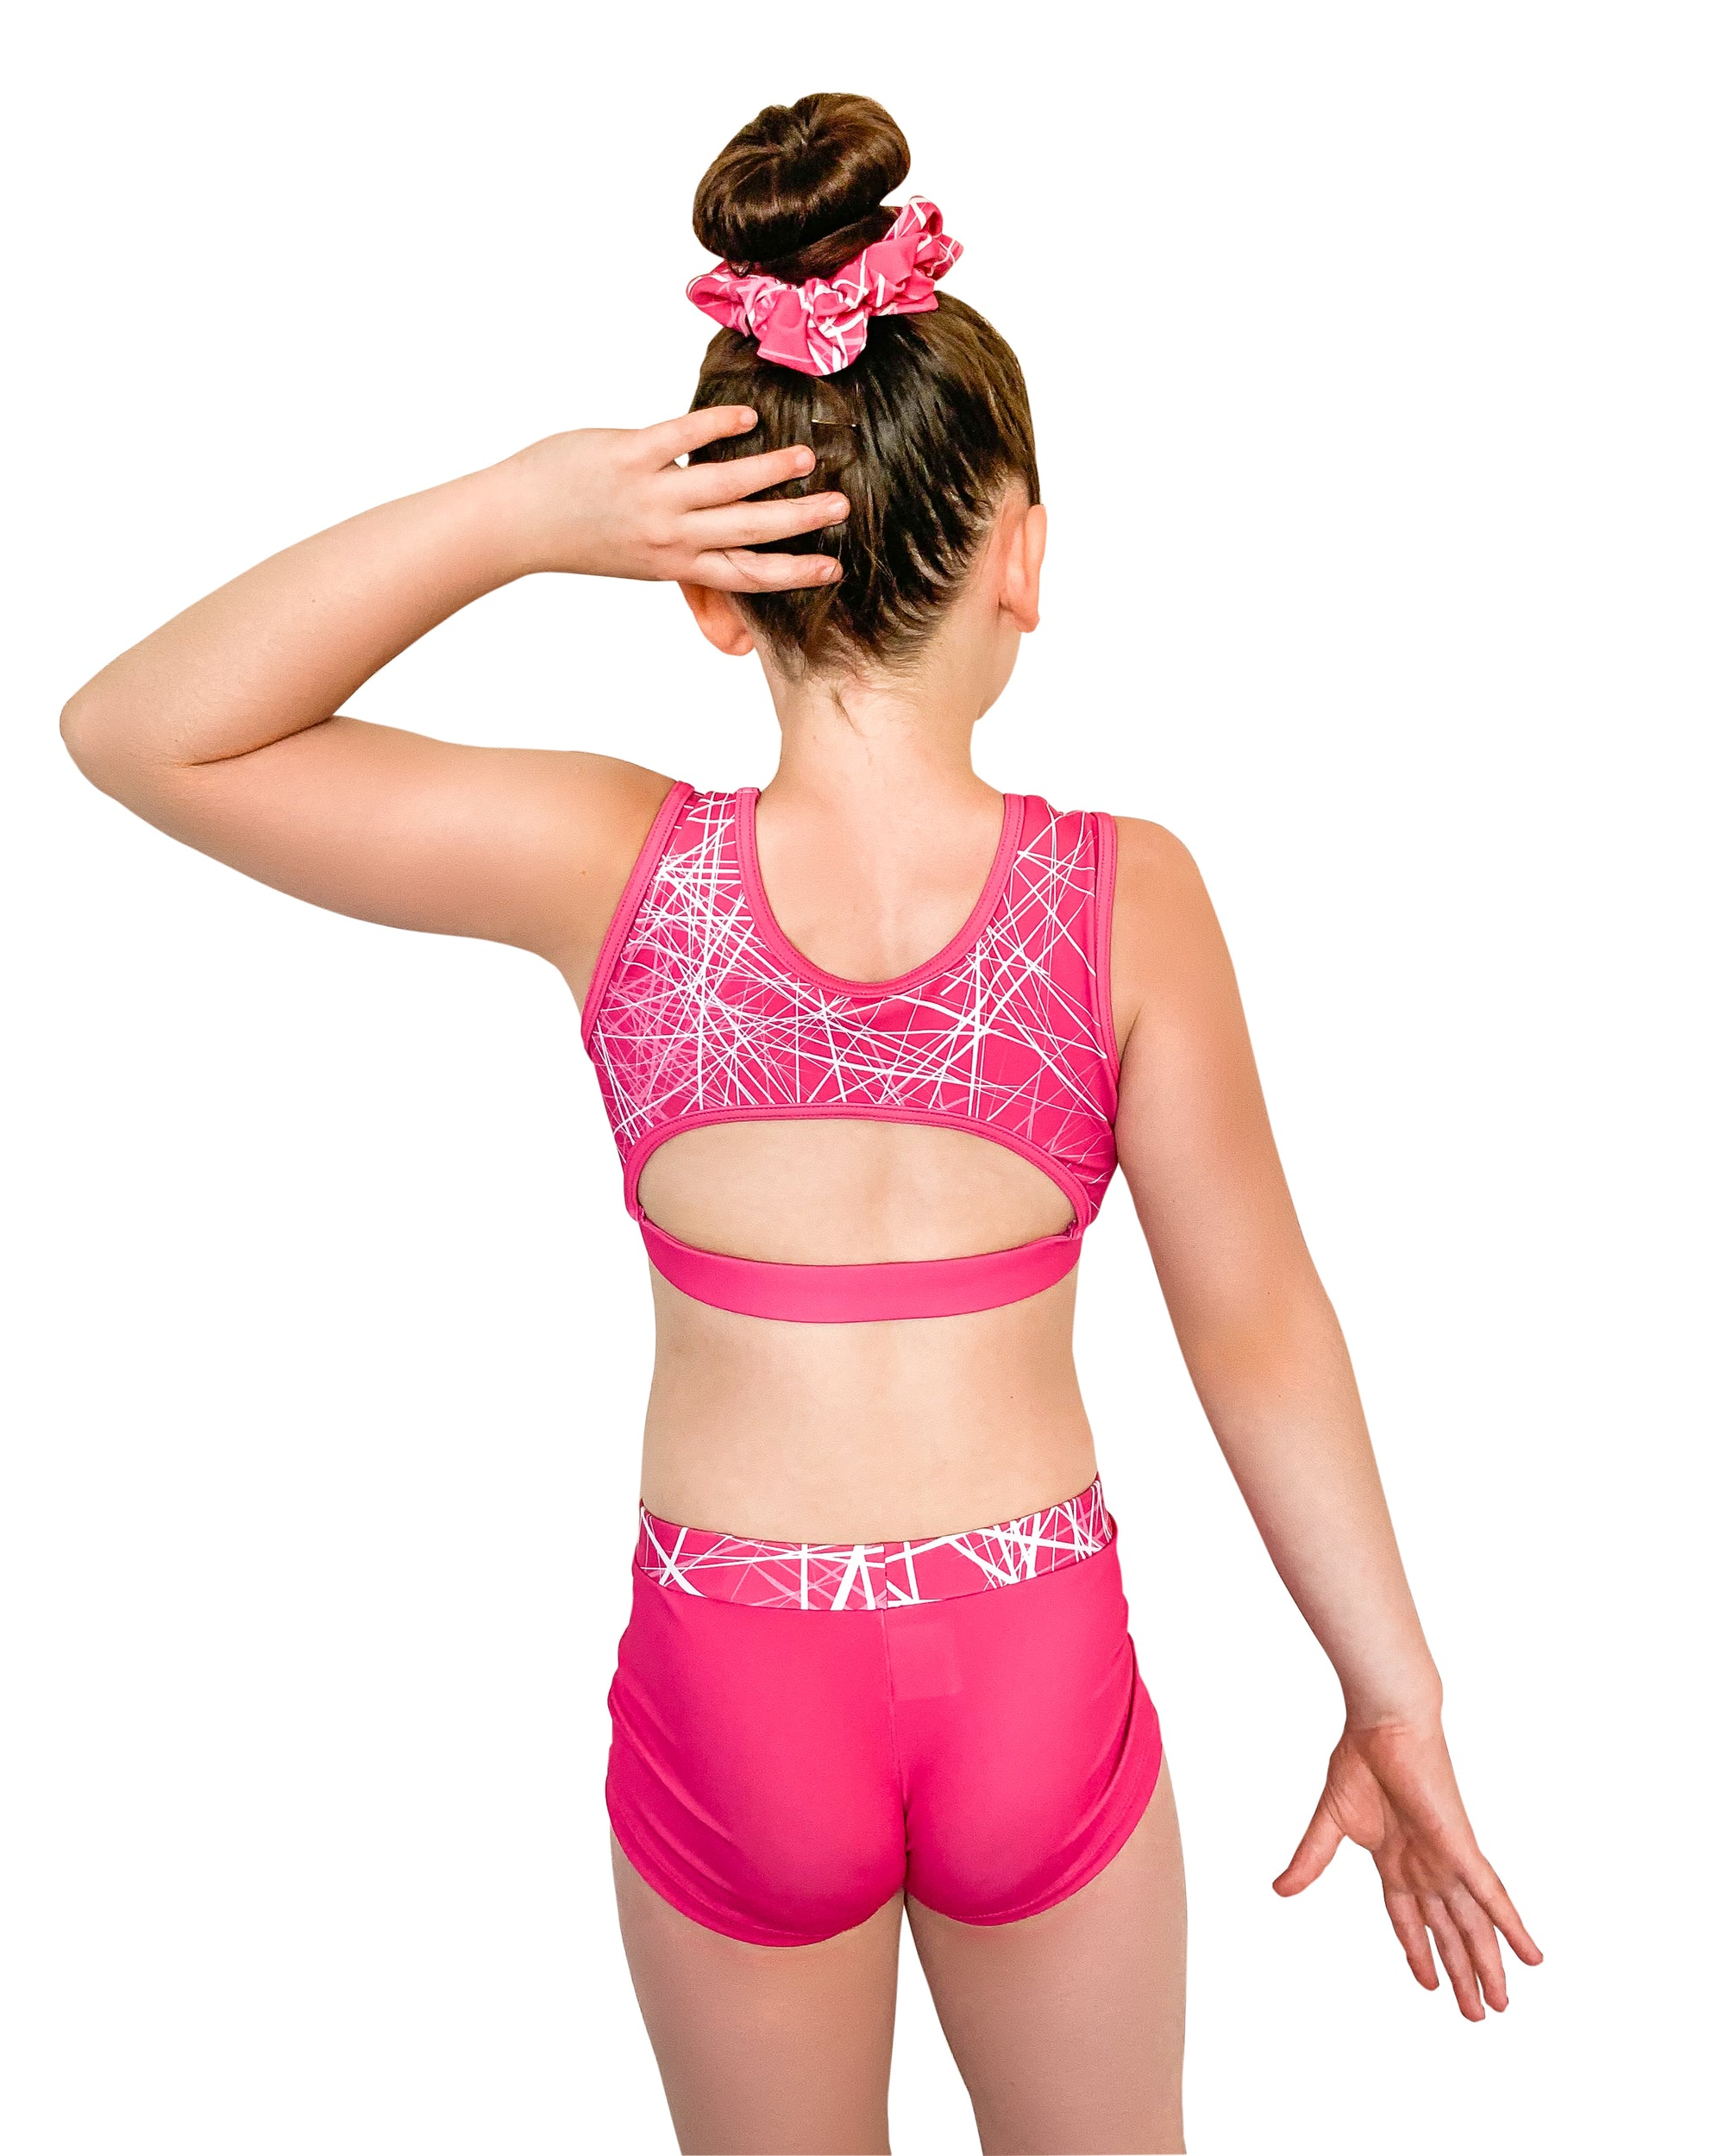 FRACTURED PINK CROP TOP SET Girls Gymnastics | Equip My Gym B